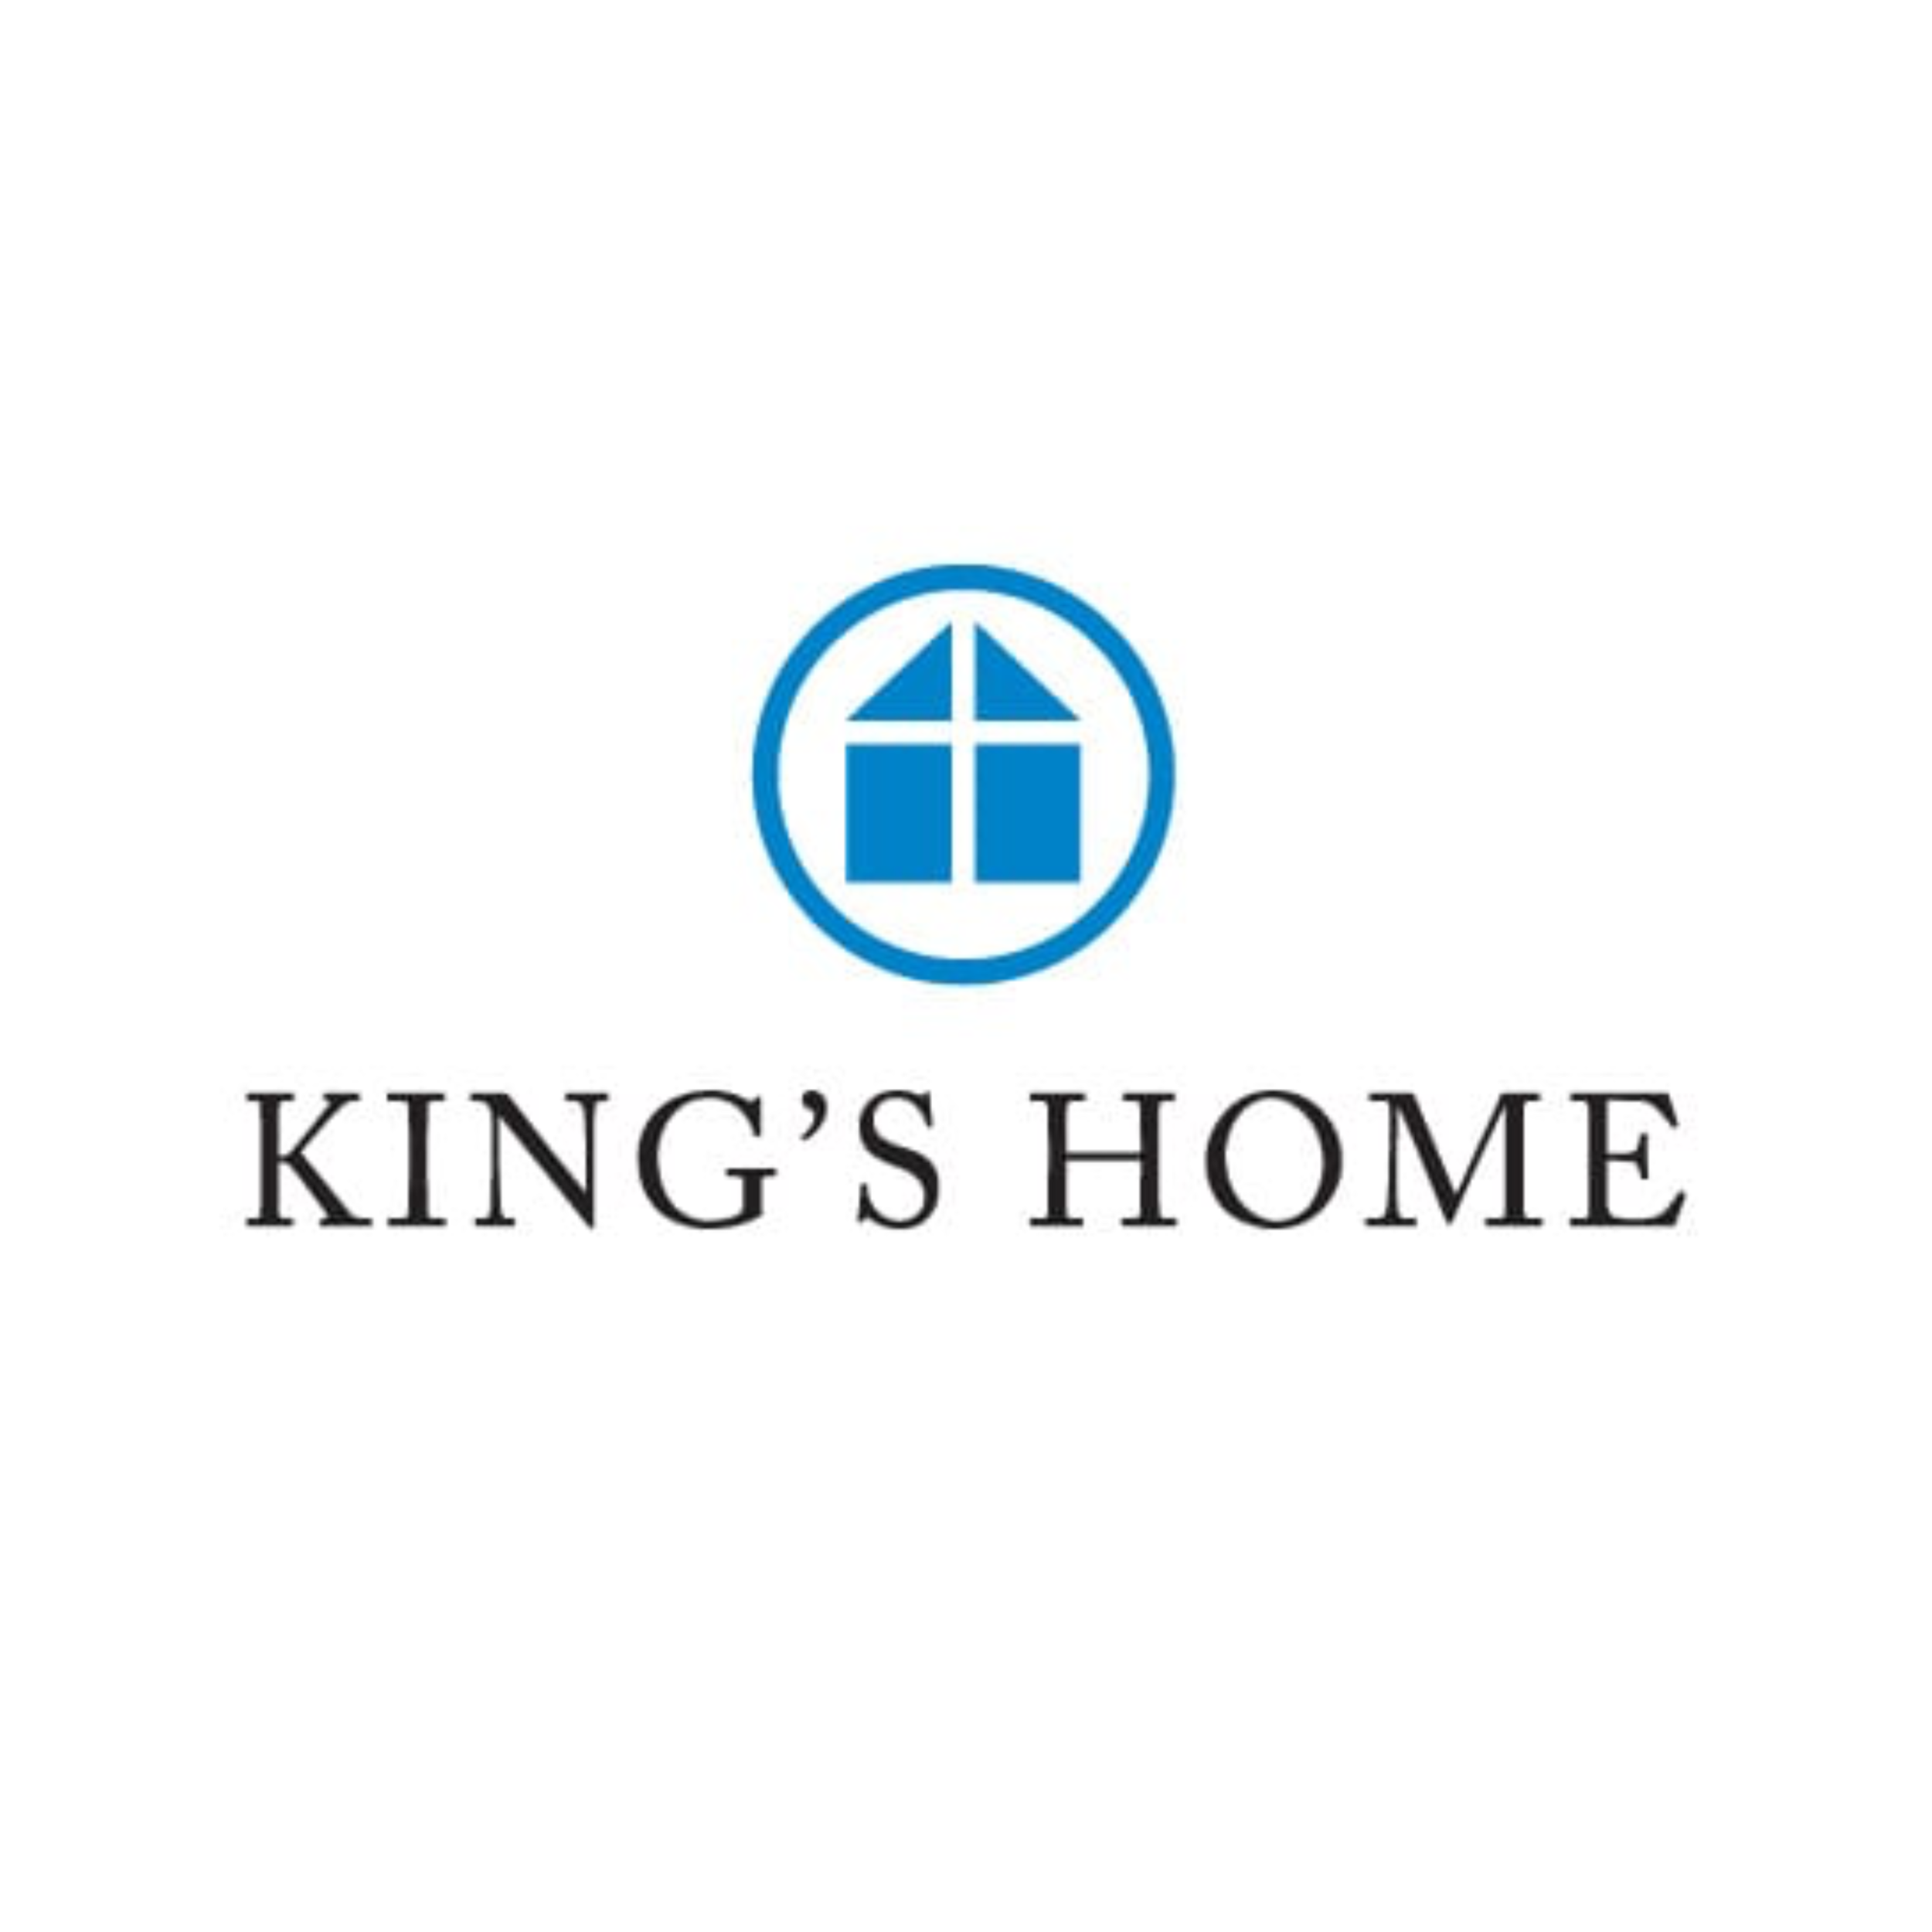 King's Home